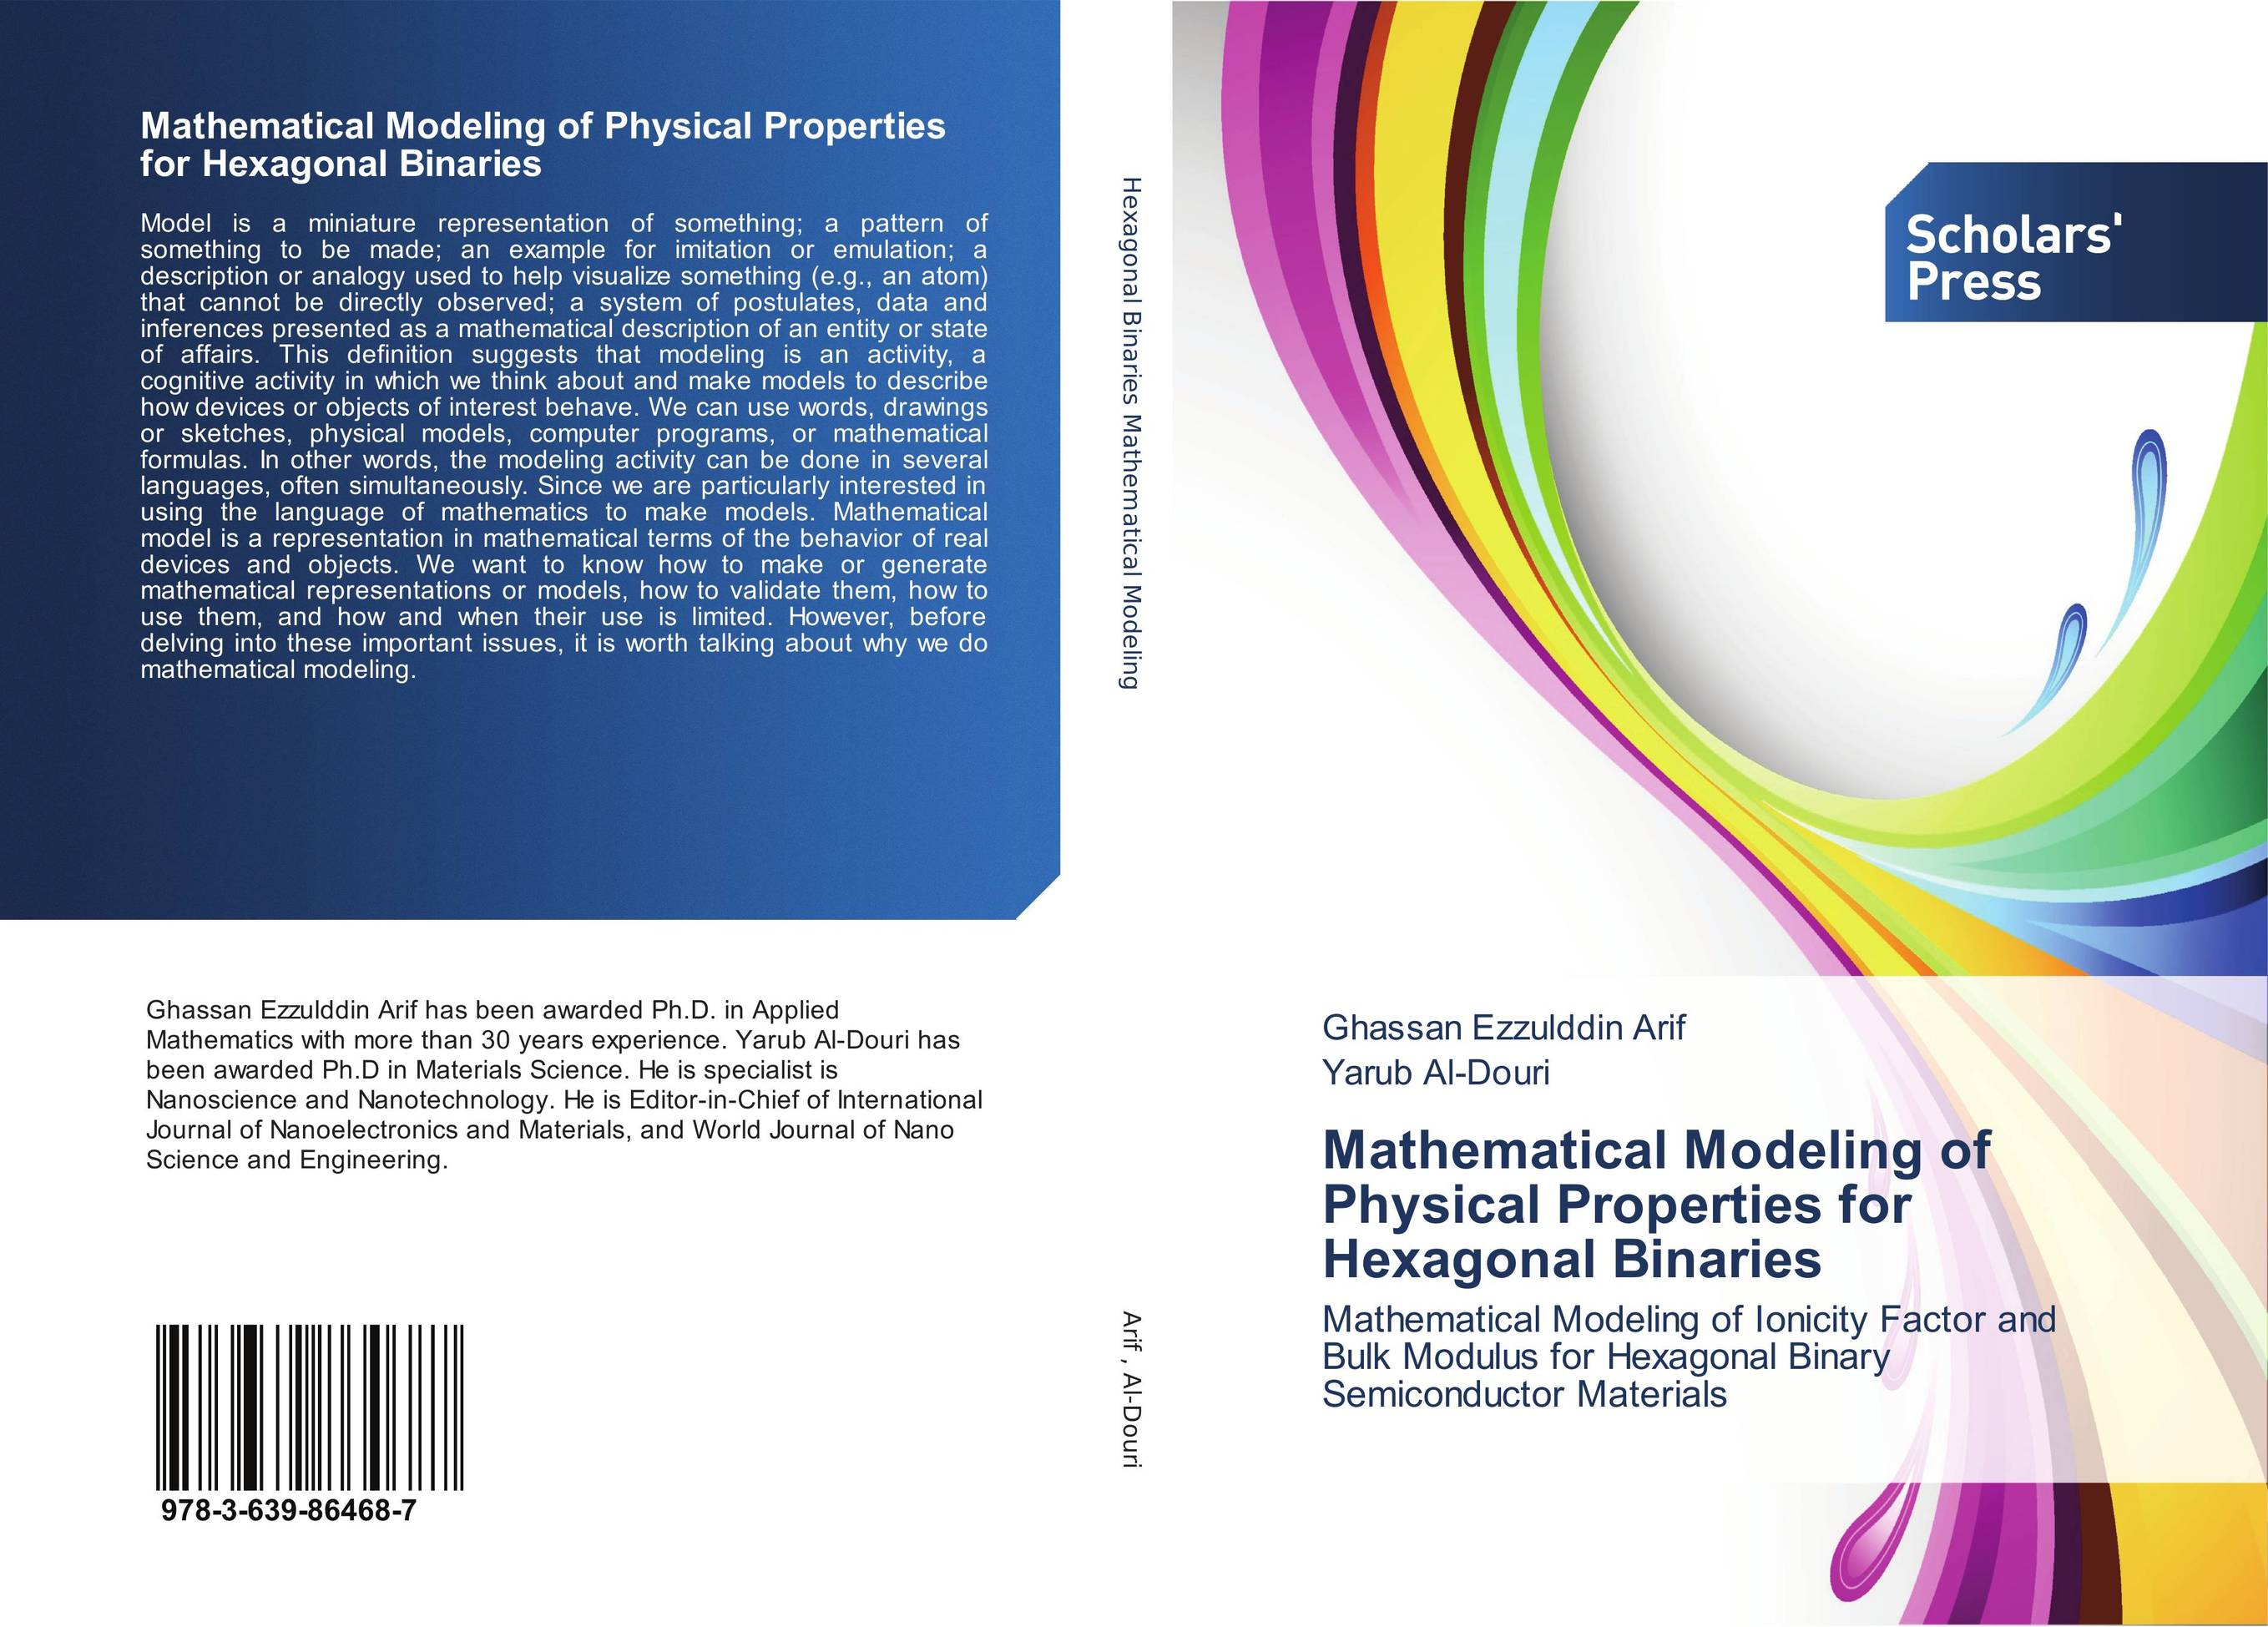 Mathematical Modeling of Physical Properties for Hexagonal Binaries mathematical modeling and analysis of therapies for metastatic cancers